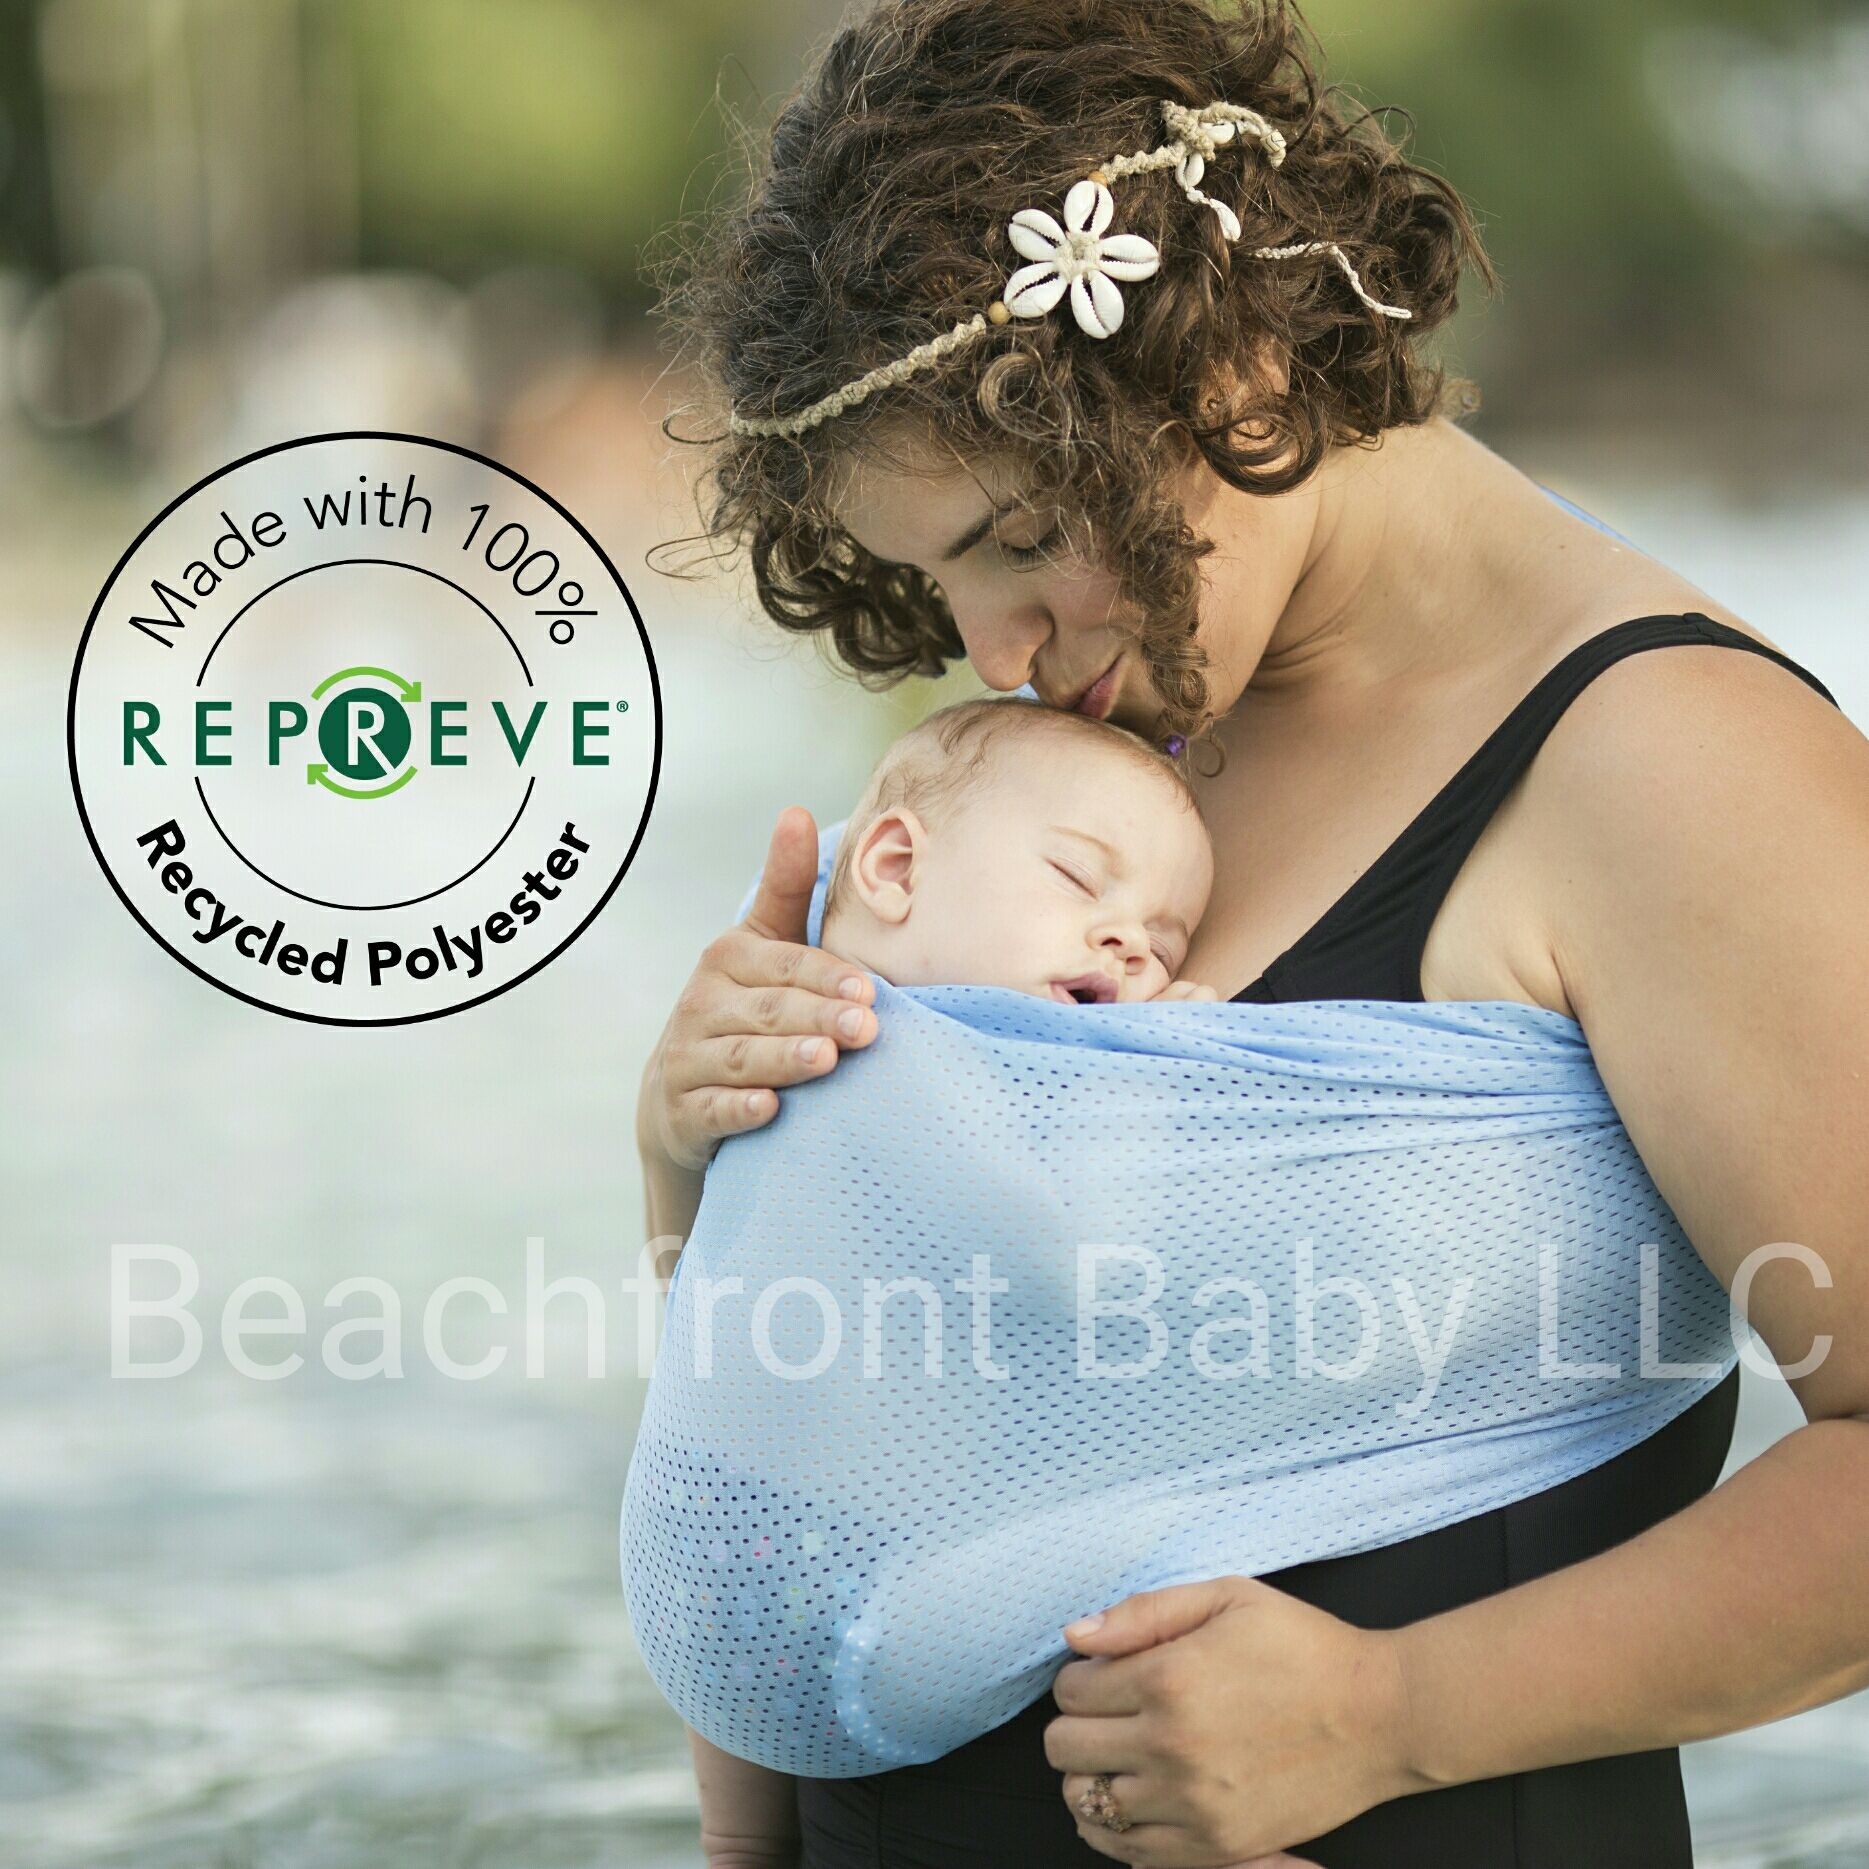 Newborn Comfort /& Toddler Perfect for Summer Breathable Quick Dry Mesh Fabric Pool Adjustable Baby Water Ring Sling and Wrap Carrier for Infant Beach /& Shower Bright Pink